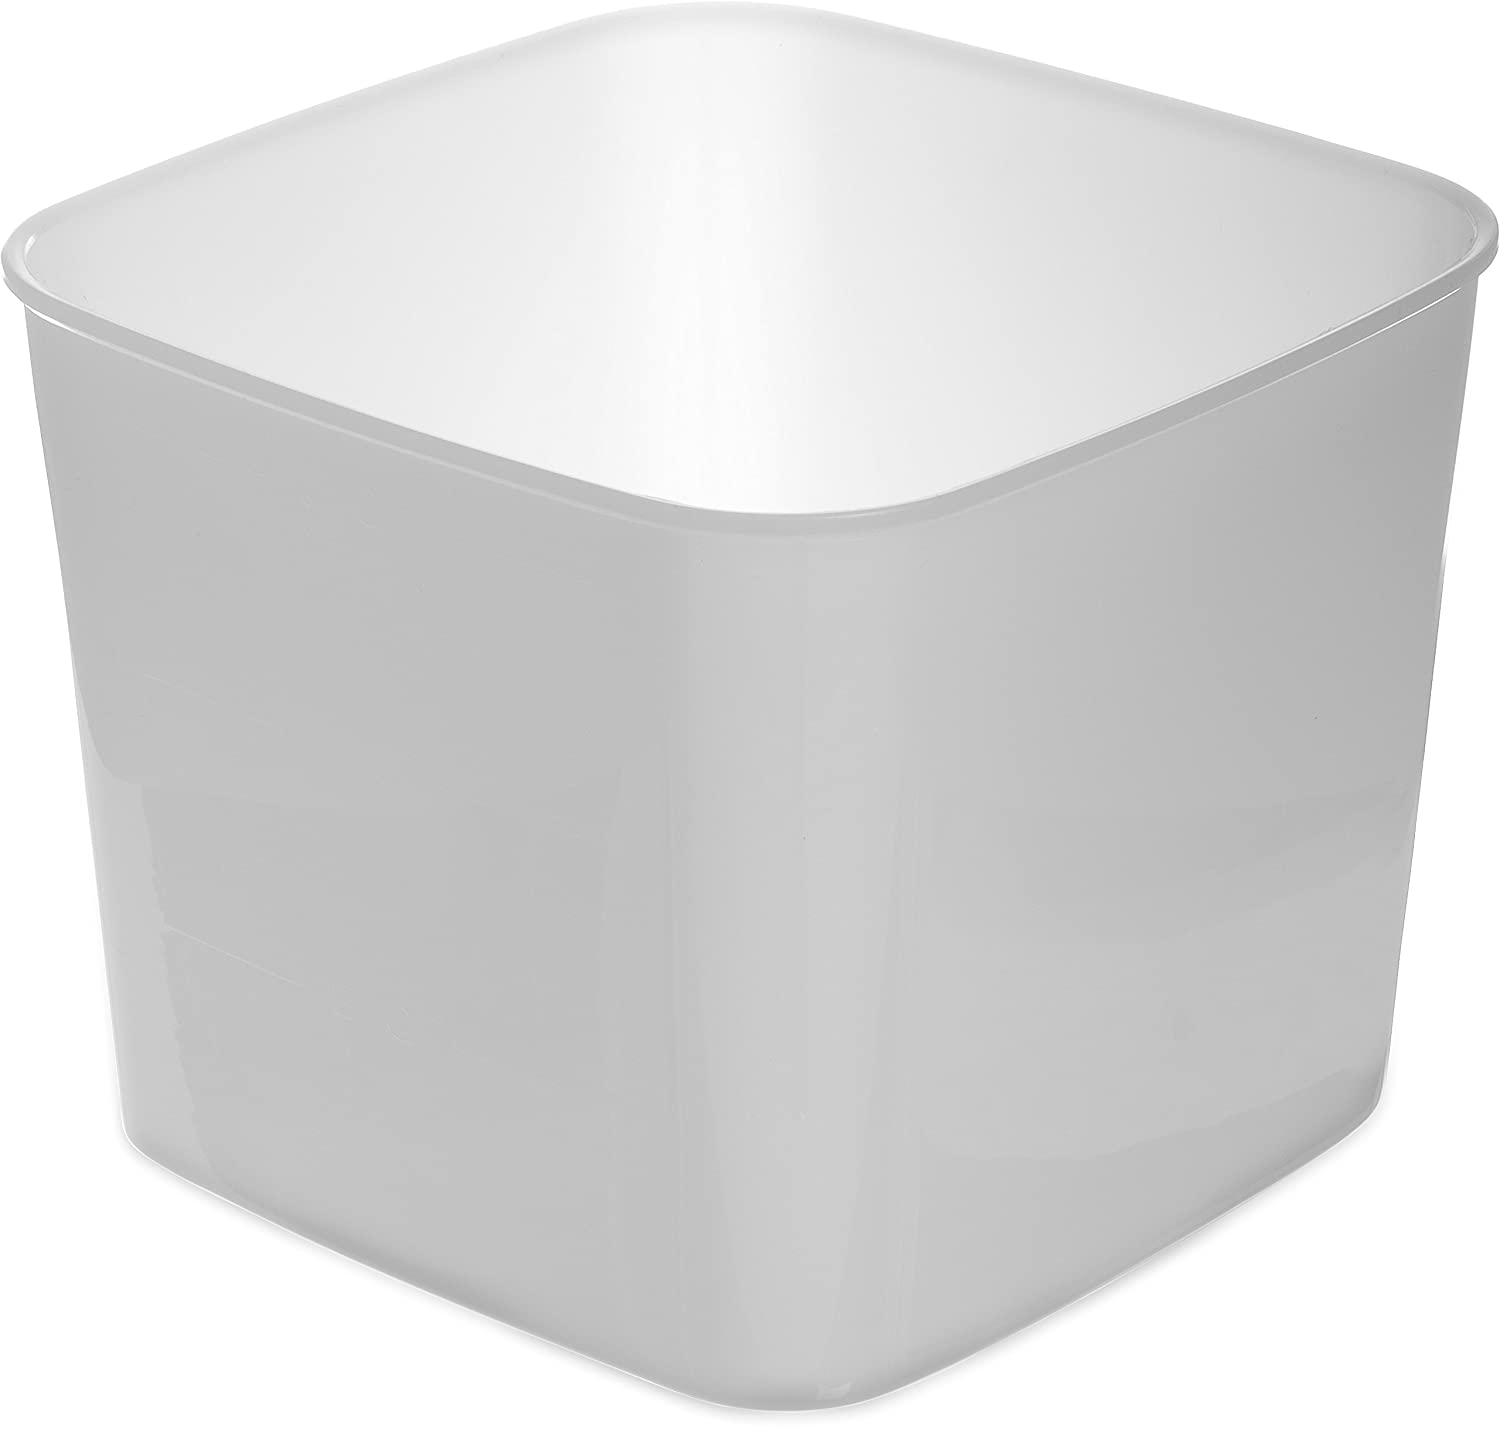 Carlisle 155602 StorPlus BPA-Free Food Storage Container Only, 6 Quart, Opaque